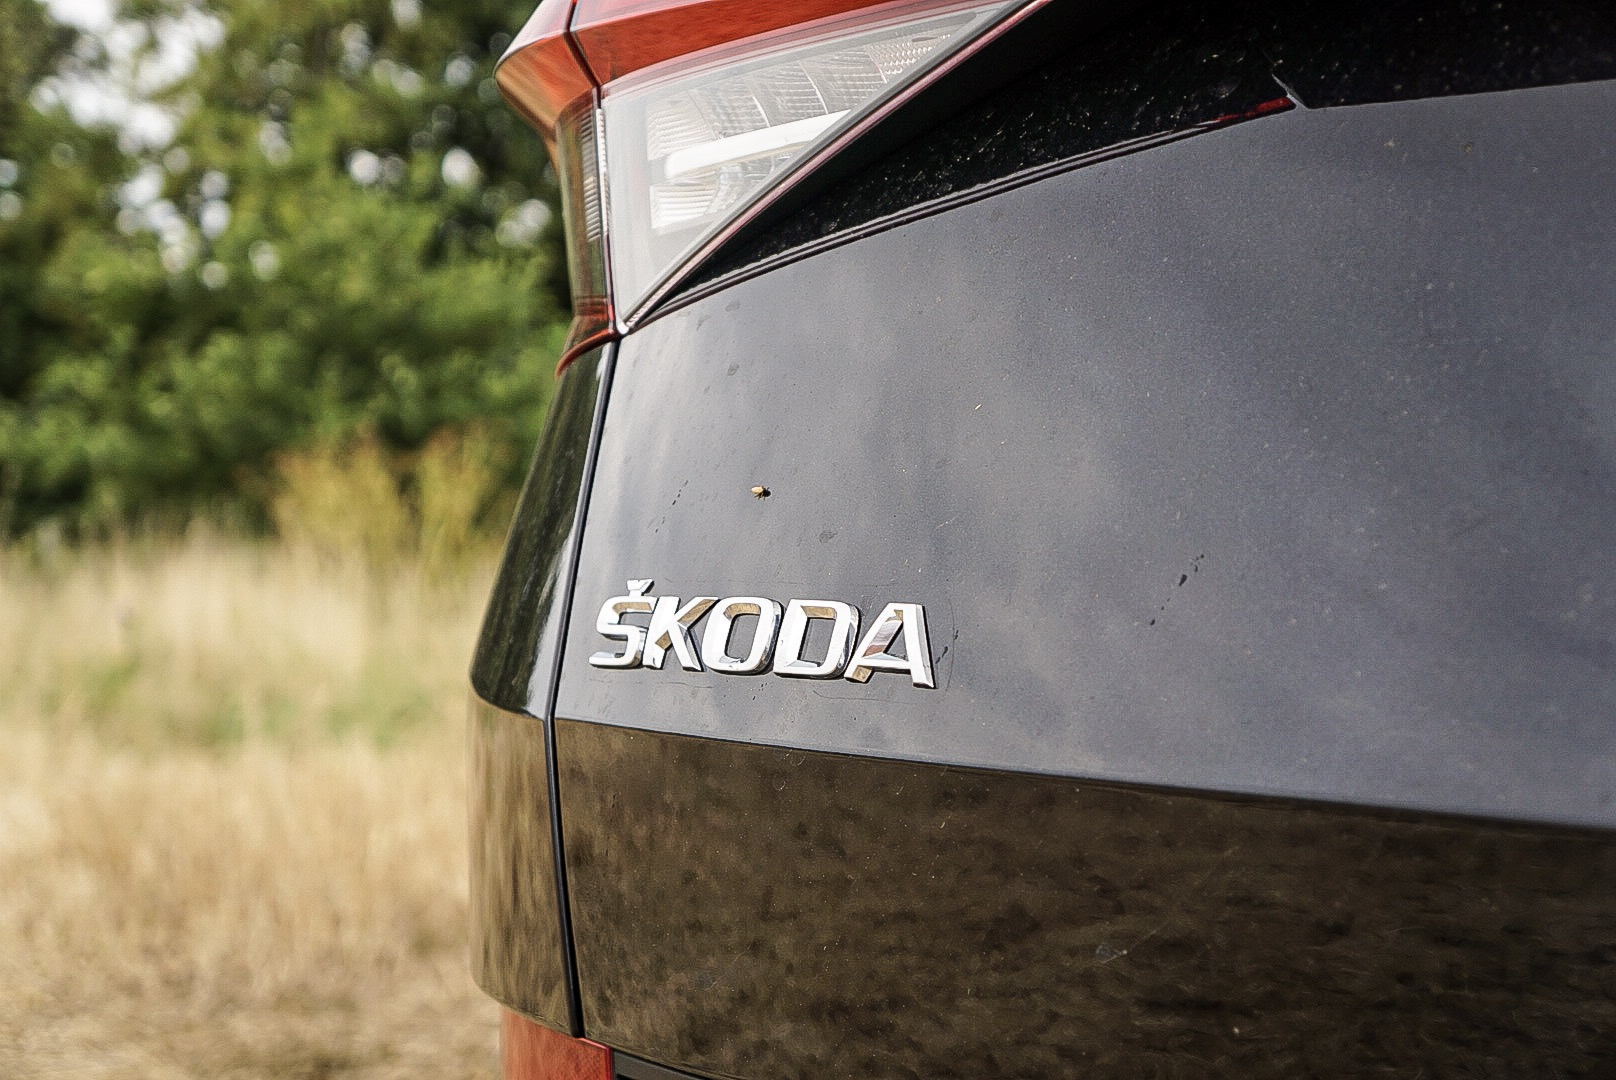 The Kodiaq is a great family car option